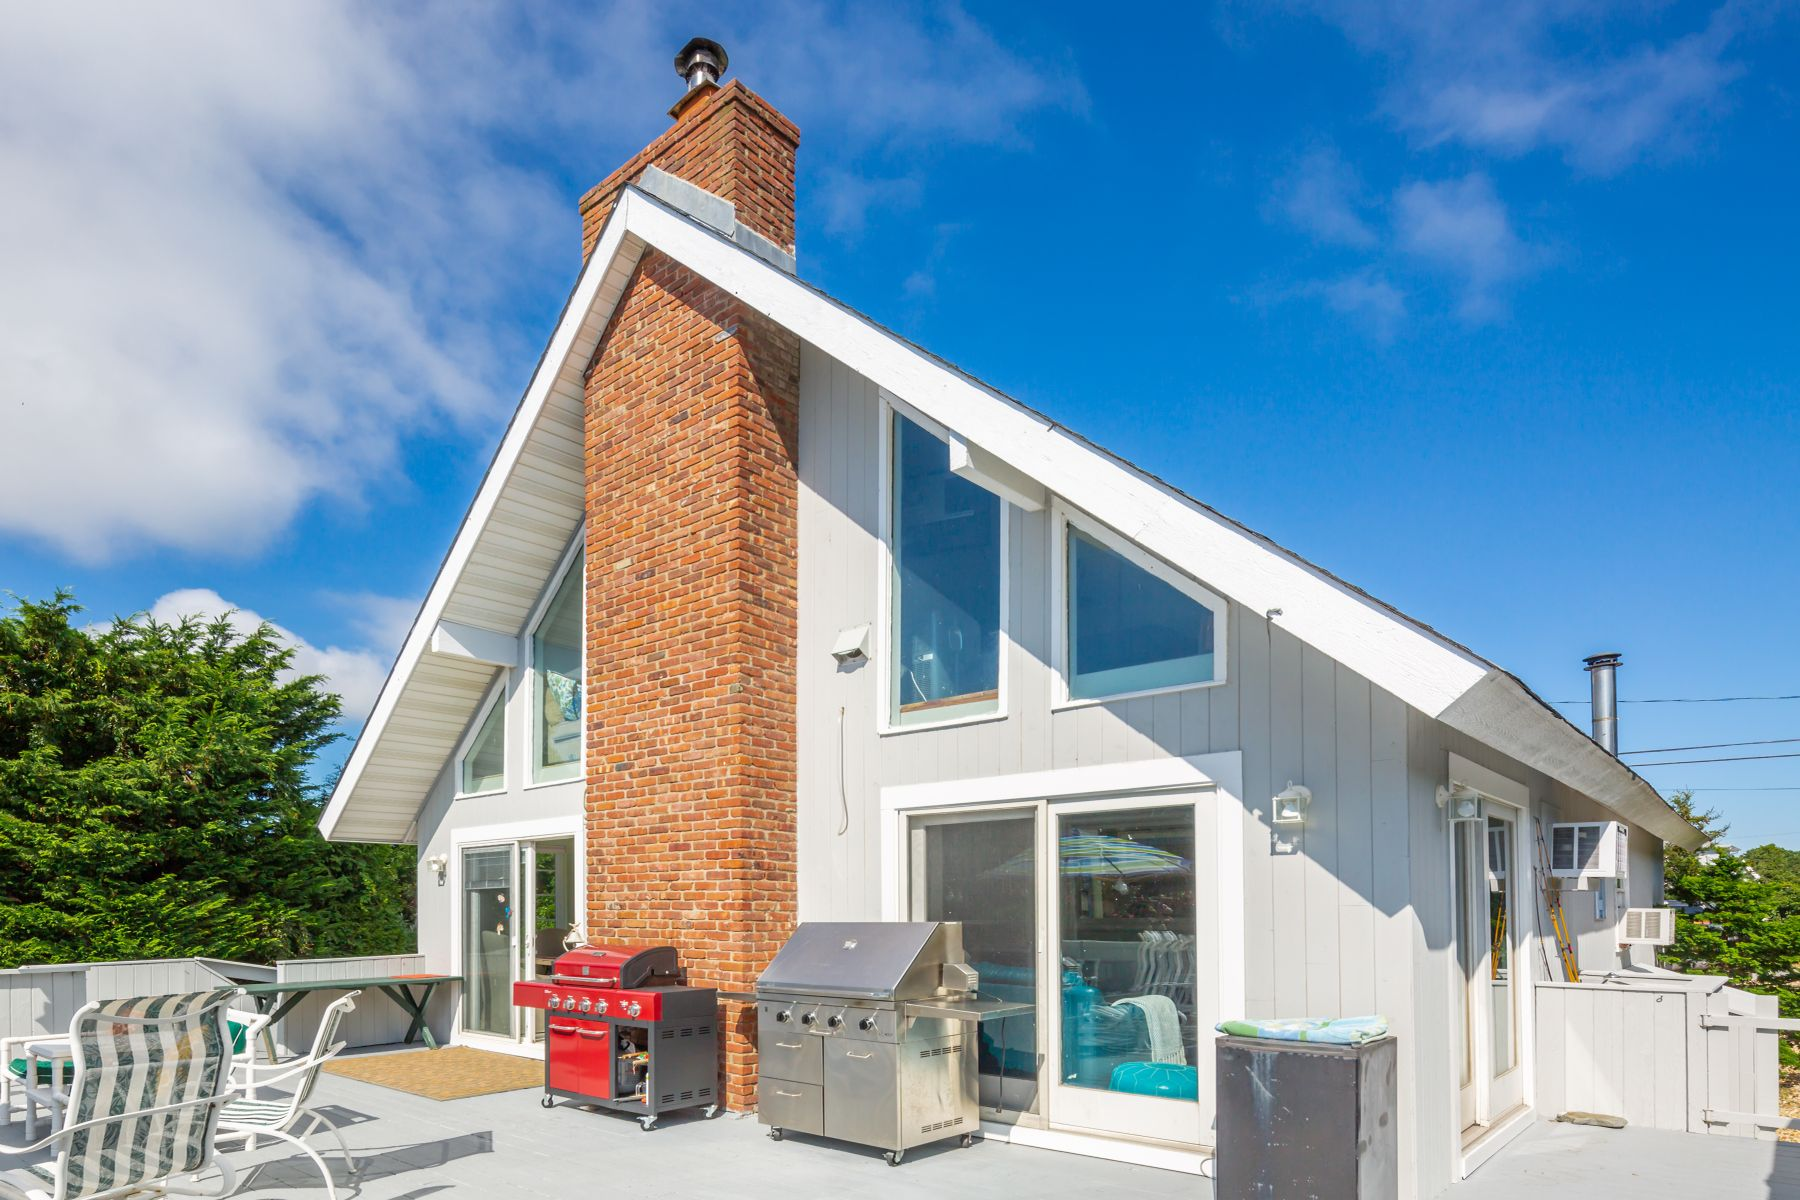 Single Family Home for Active at Dunes Beach Cottage 48 Leeton Road Amagansett, New York 11930 United States